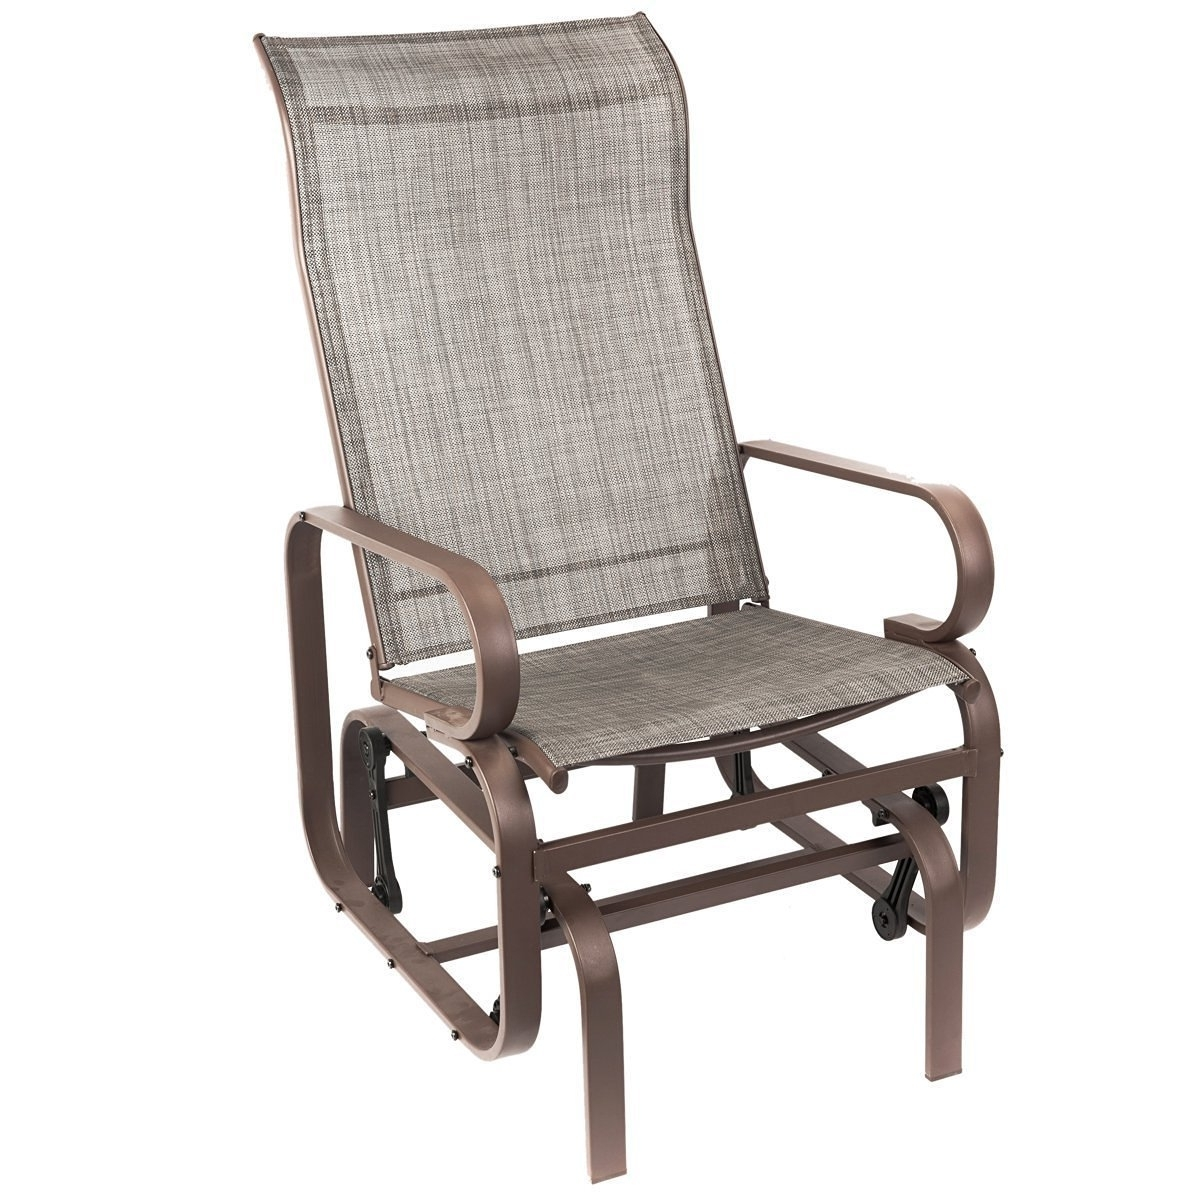 Popular Wicker Rocking Chairs And Ottoman Inside Upholstered Rocking Chair With Ottoman White Nursery Glider And (View 8 of 15)